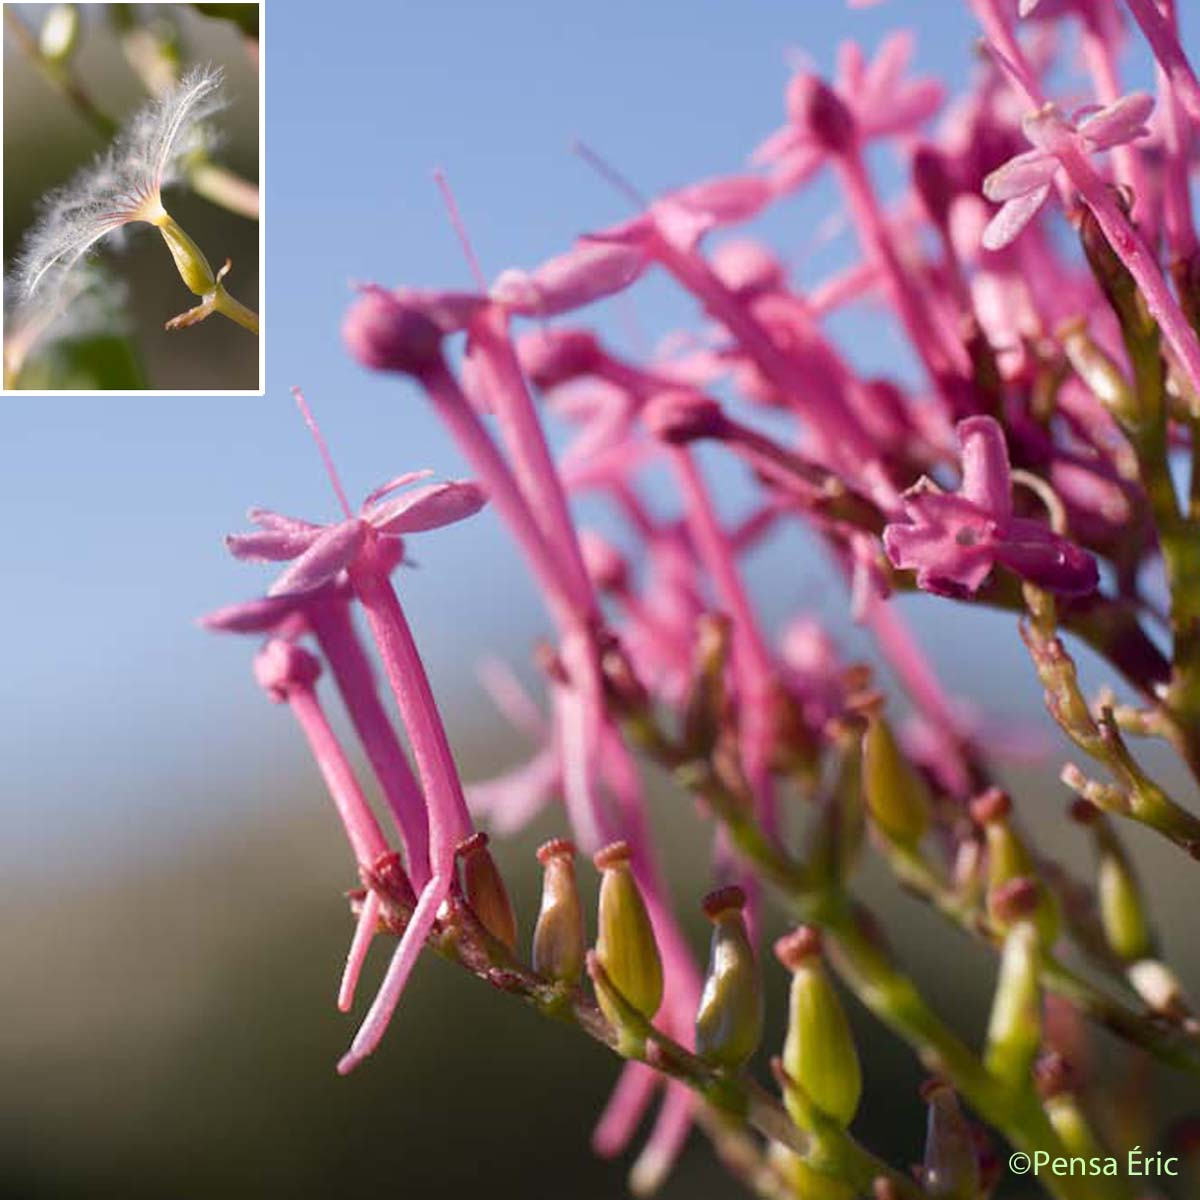 Centranthe rouge - Centranthus ruber subsp. ruber